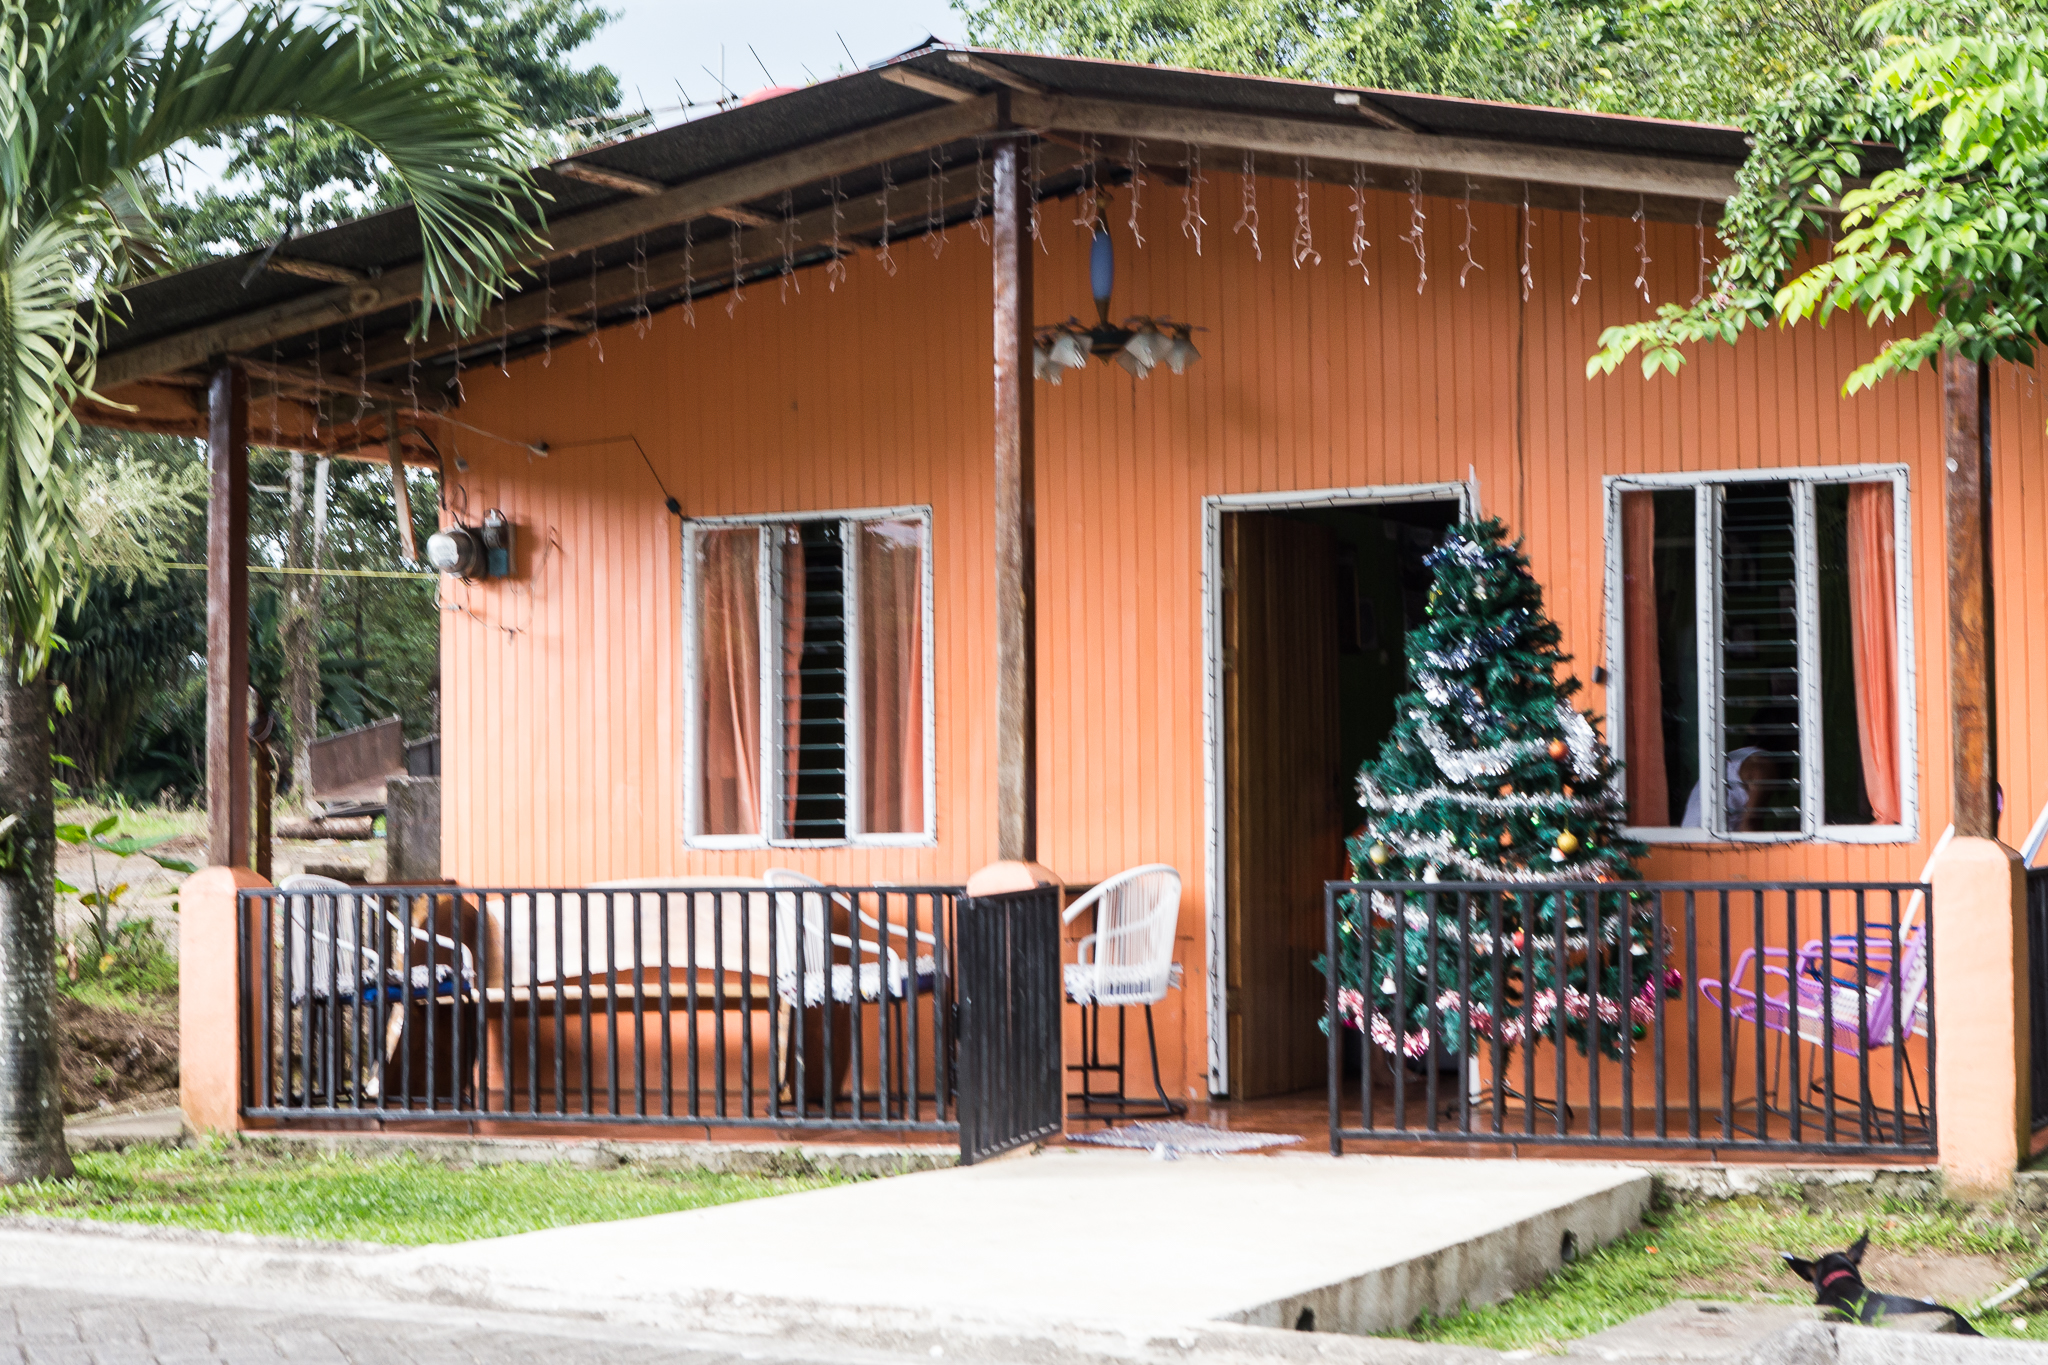 The houses were very simplistic with mainly pieces of sheet metal for the walls and roofs. Christmas trees were often placed outside on the porches due to lack of space inside. There were many different colored houses, some being multi-colored.